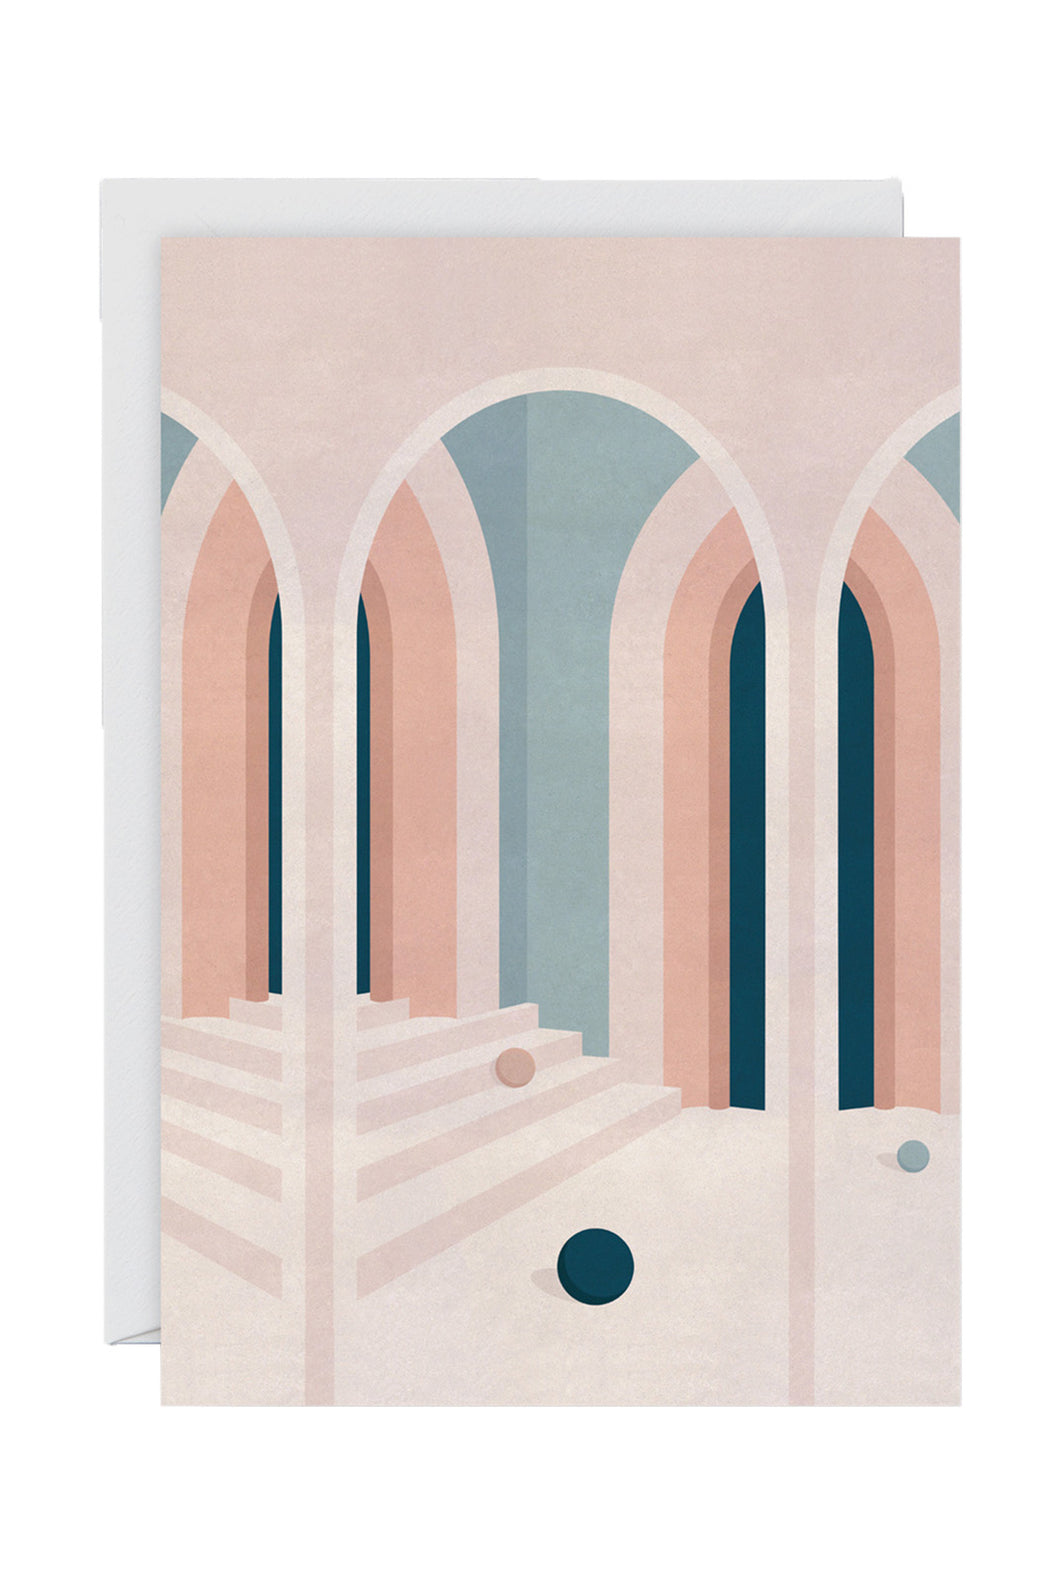 WRAP - Charlotte Taylor Collection - Single Art Card - Pastel Arches